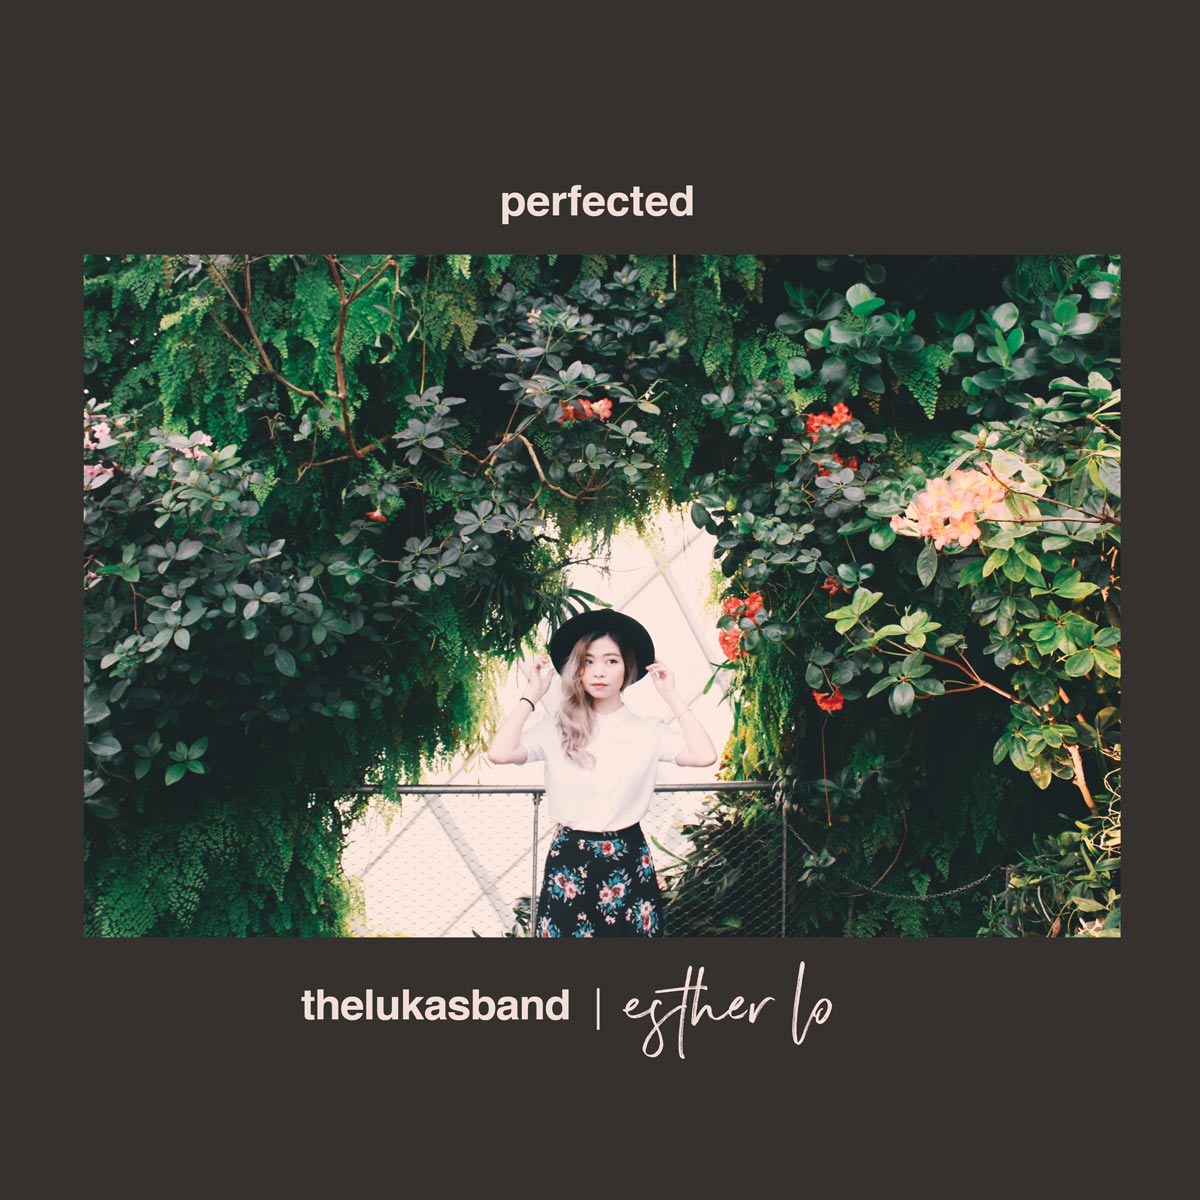 esther-lo-perfected-front-cover.jpg